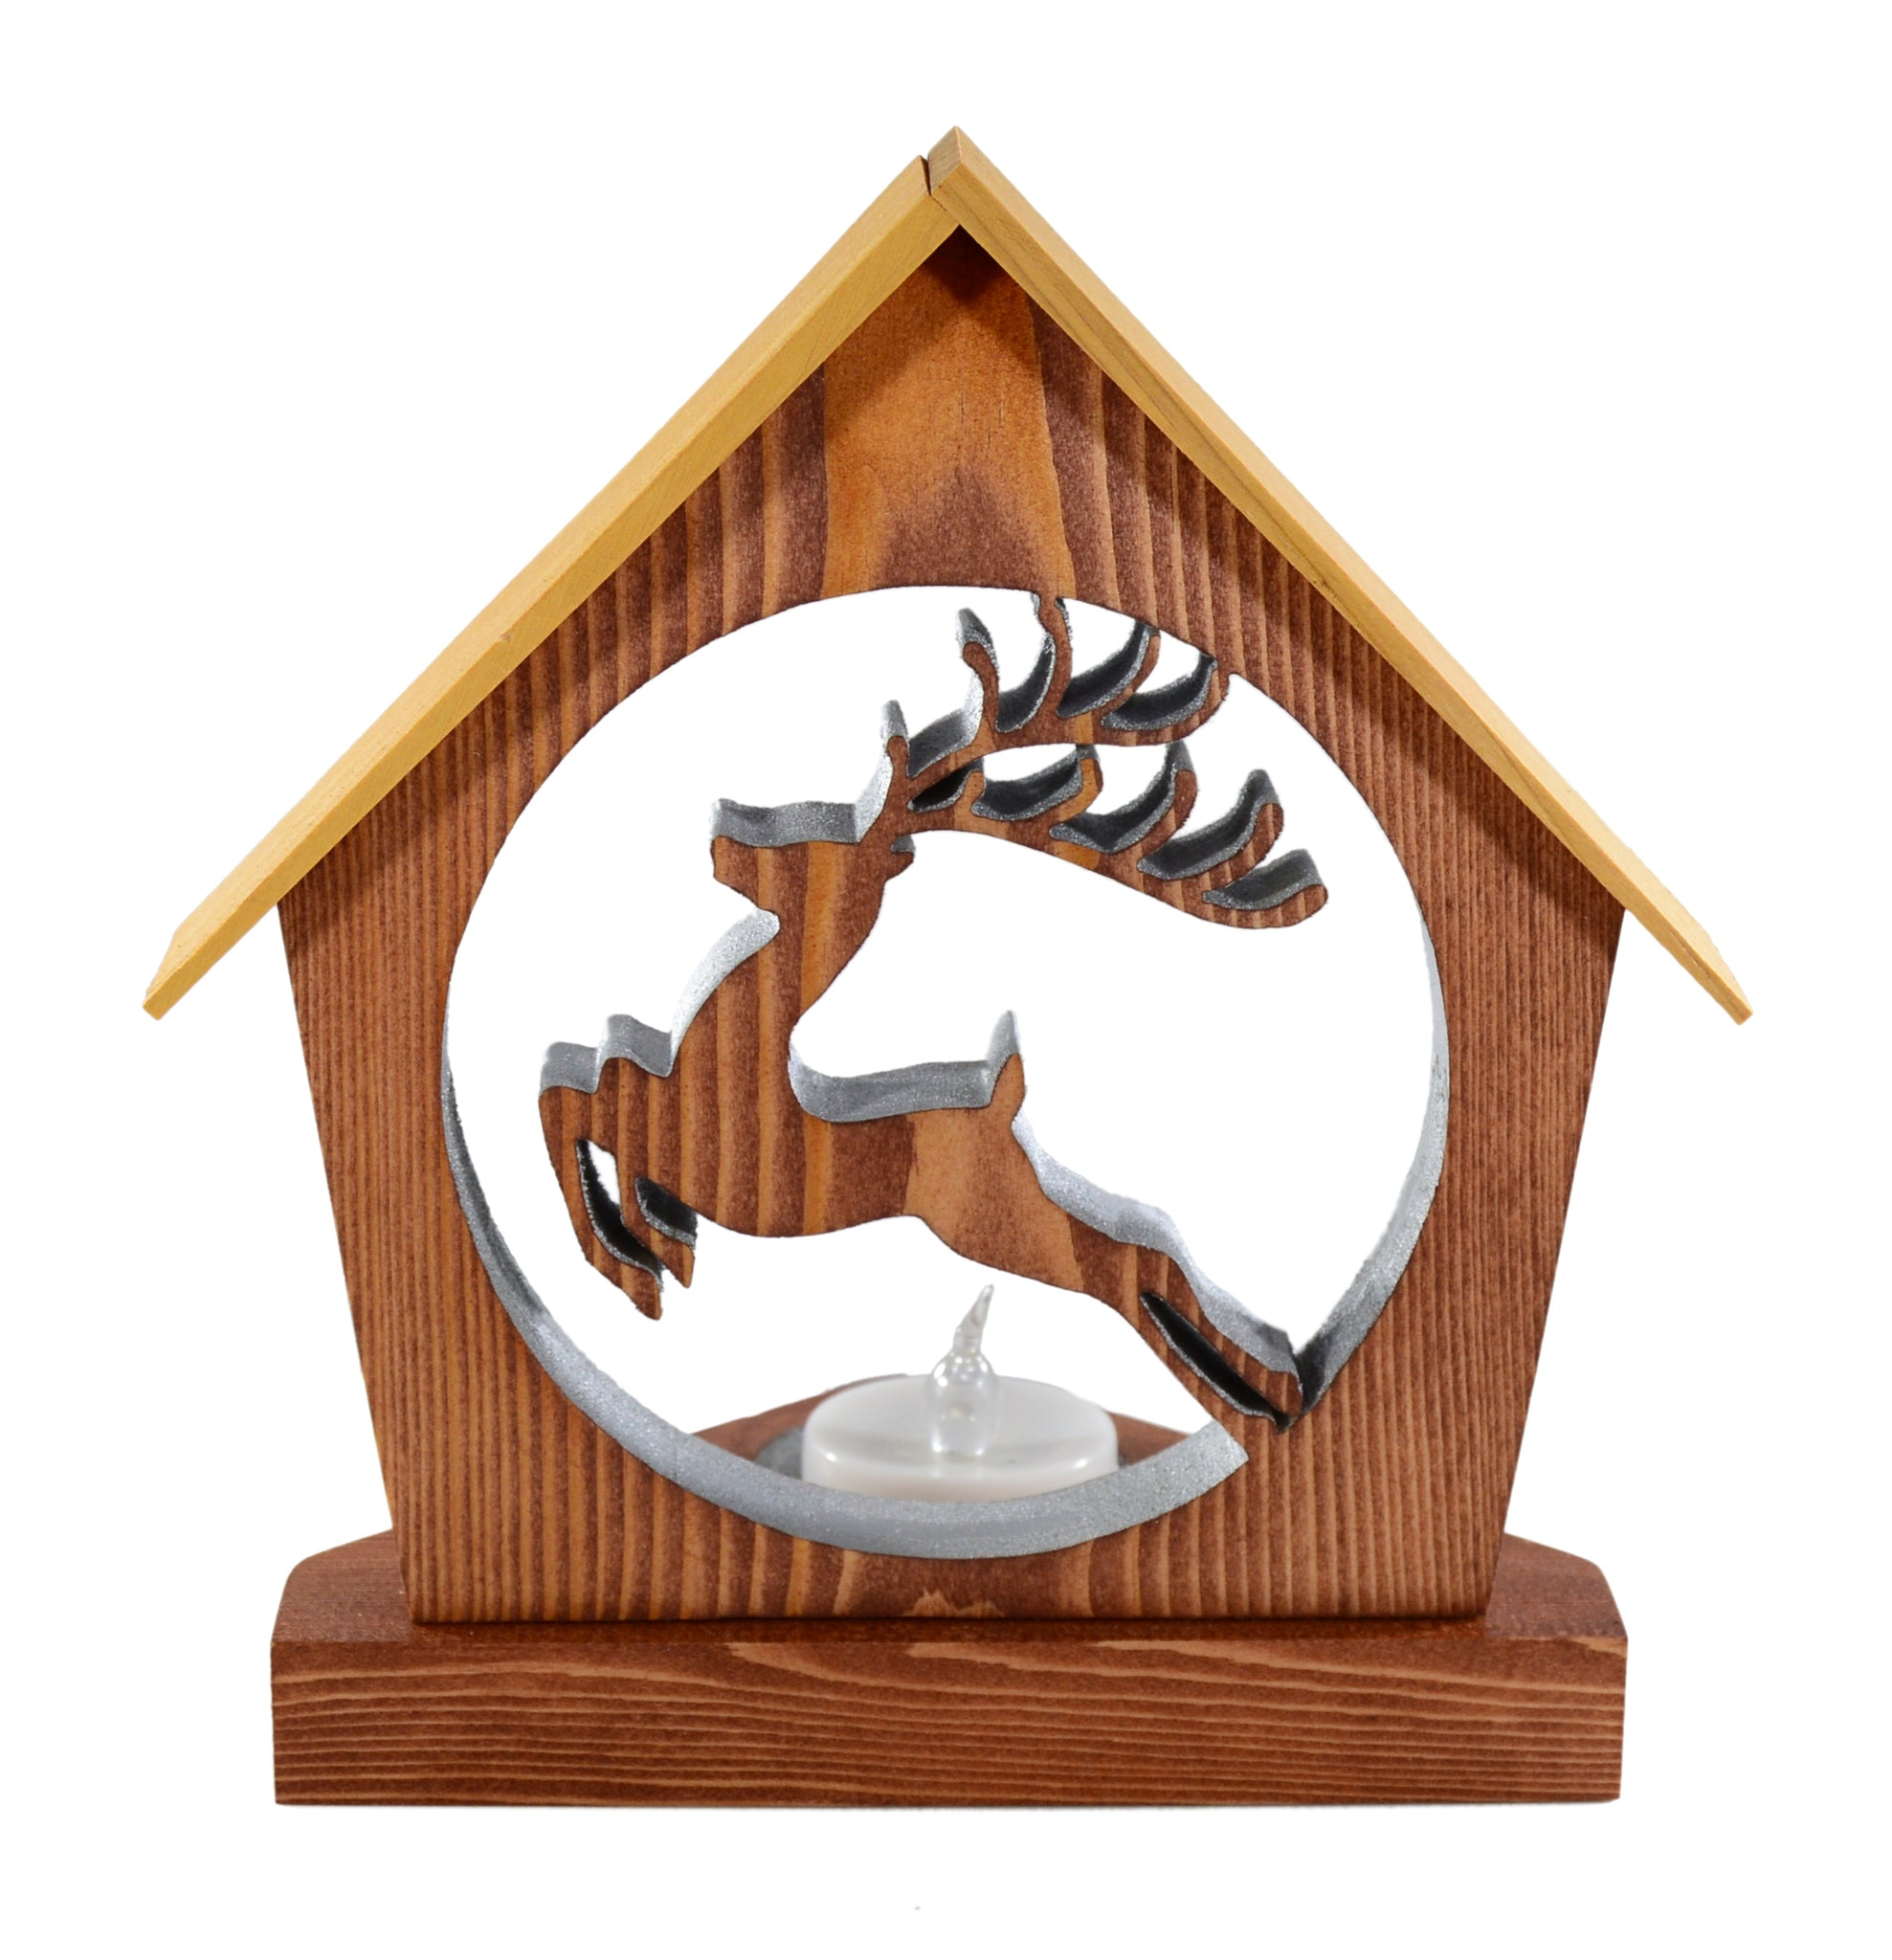 PRANCING REINDEER Holiday Keepsake Tealight Candle Holder - Unique Christmas Home Decor Gift